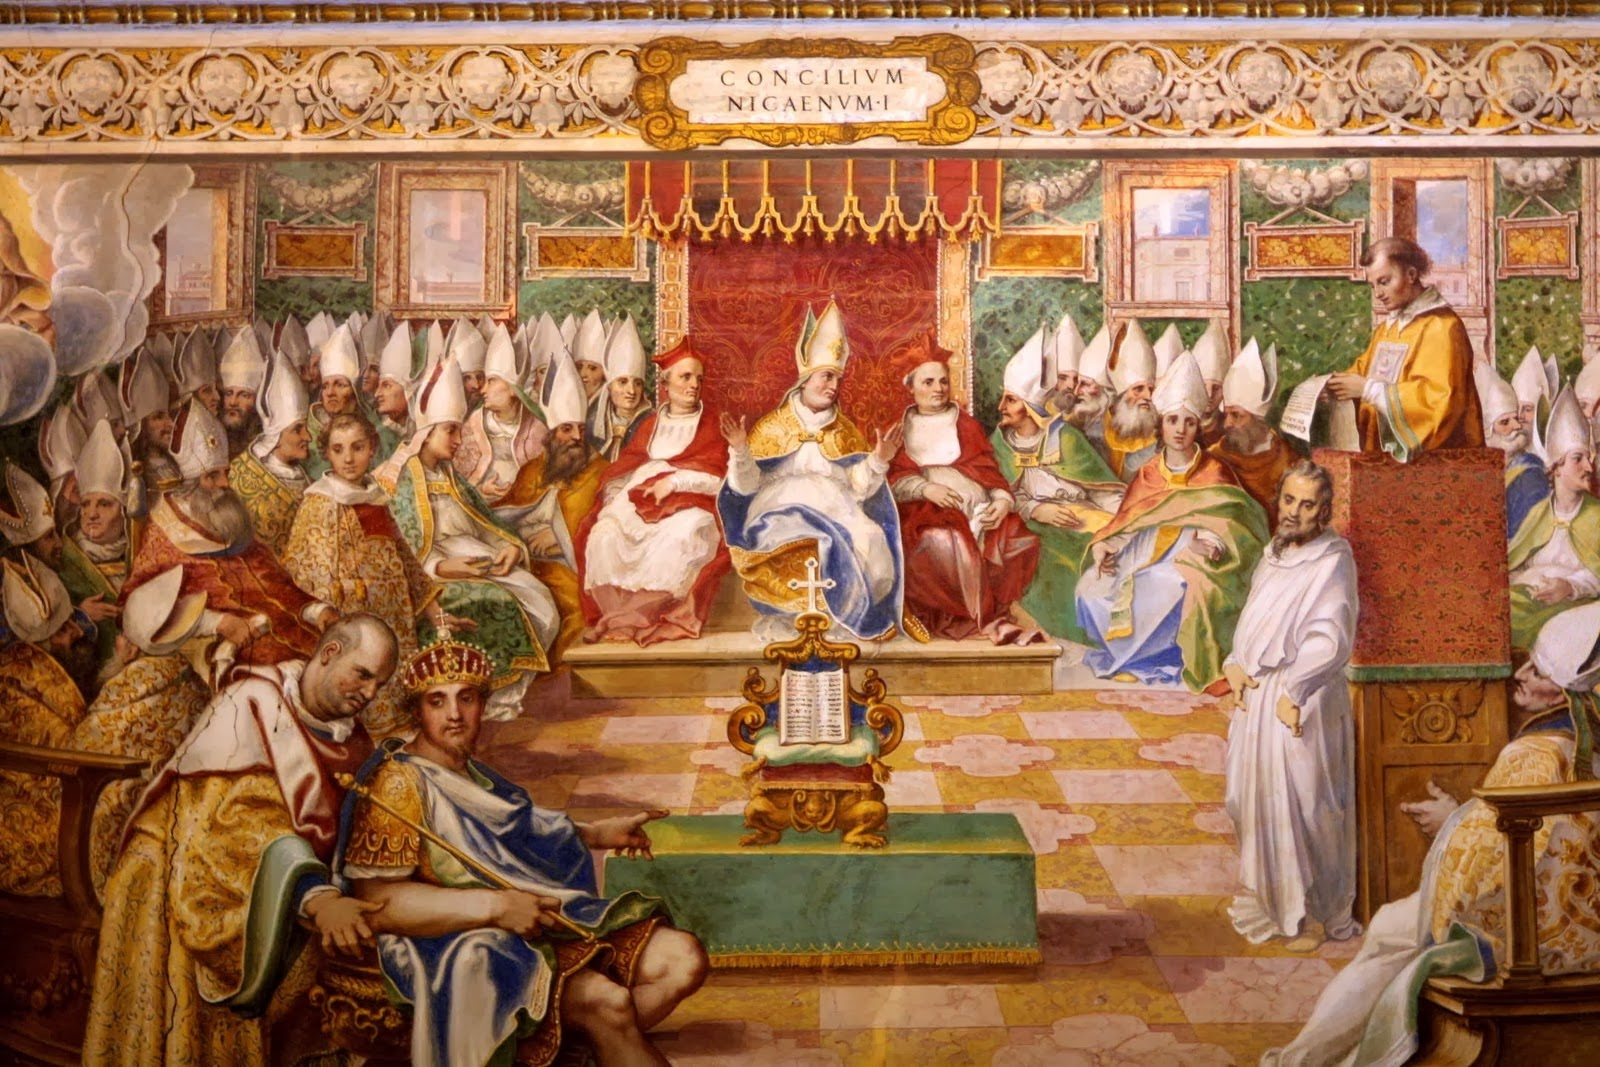 Council of Nicaea 325 AD & Christ's Divinity: Lost Gnostic Gospel's